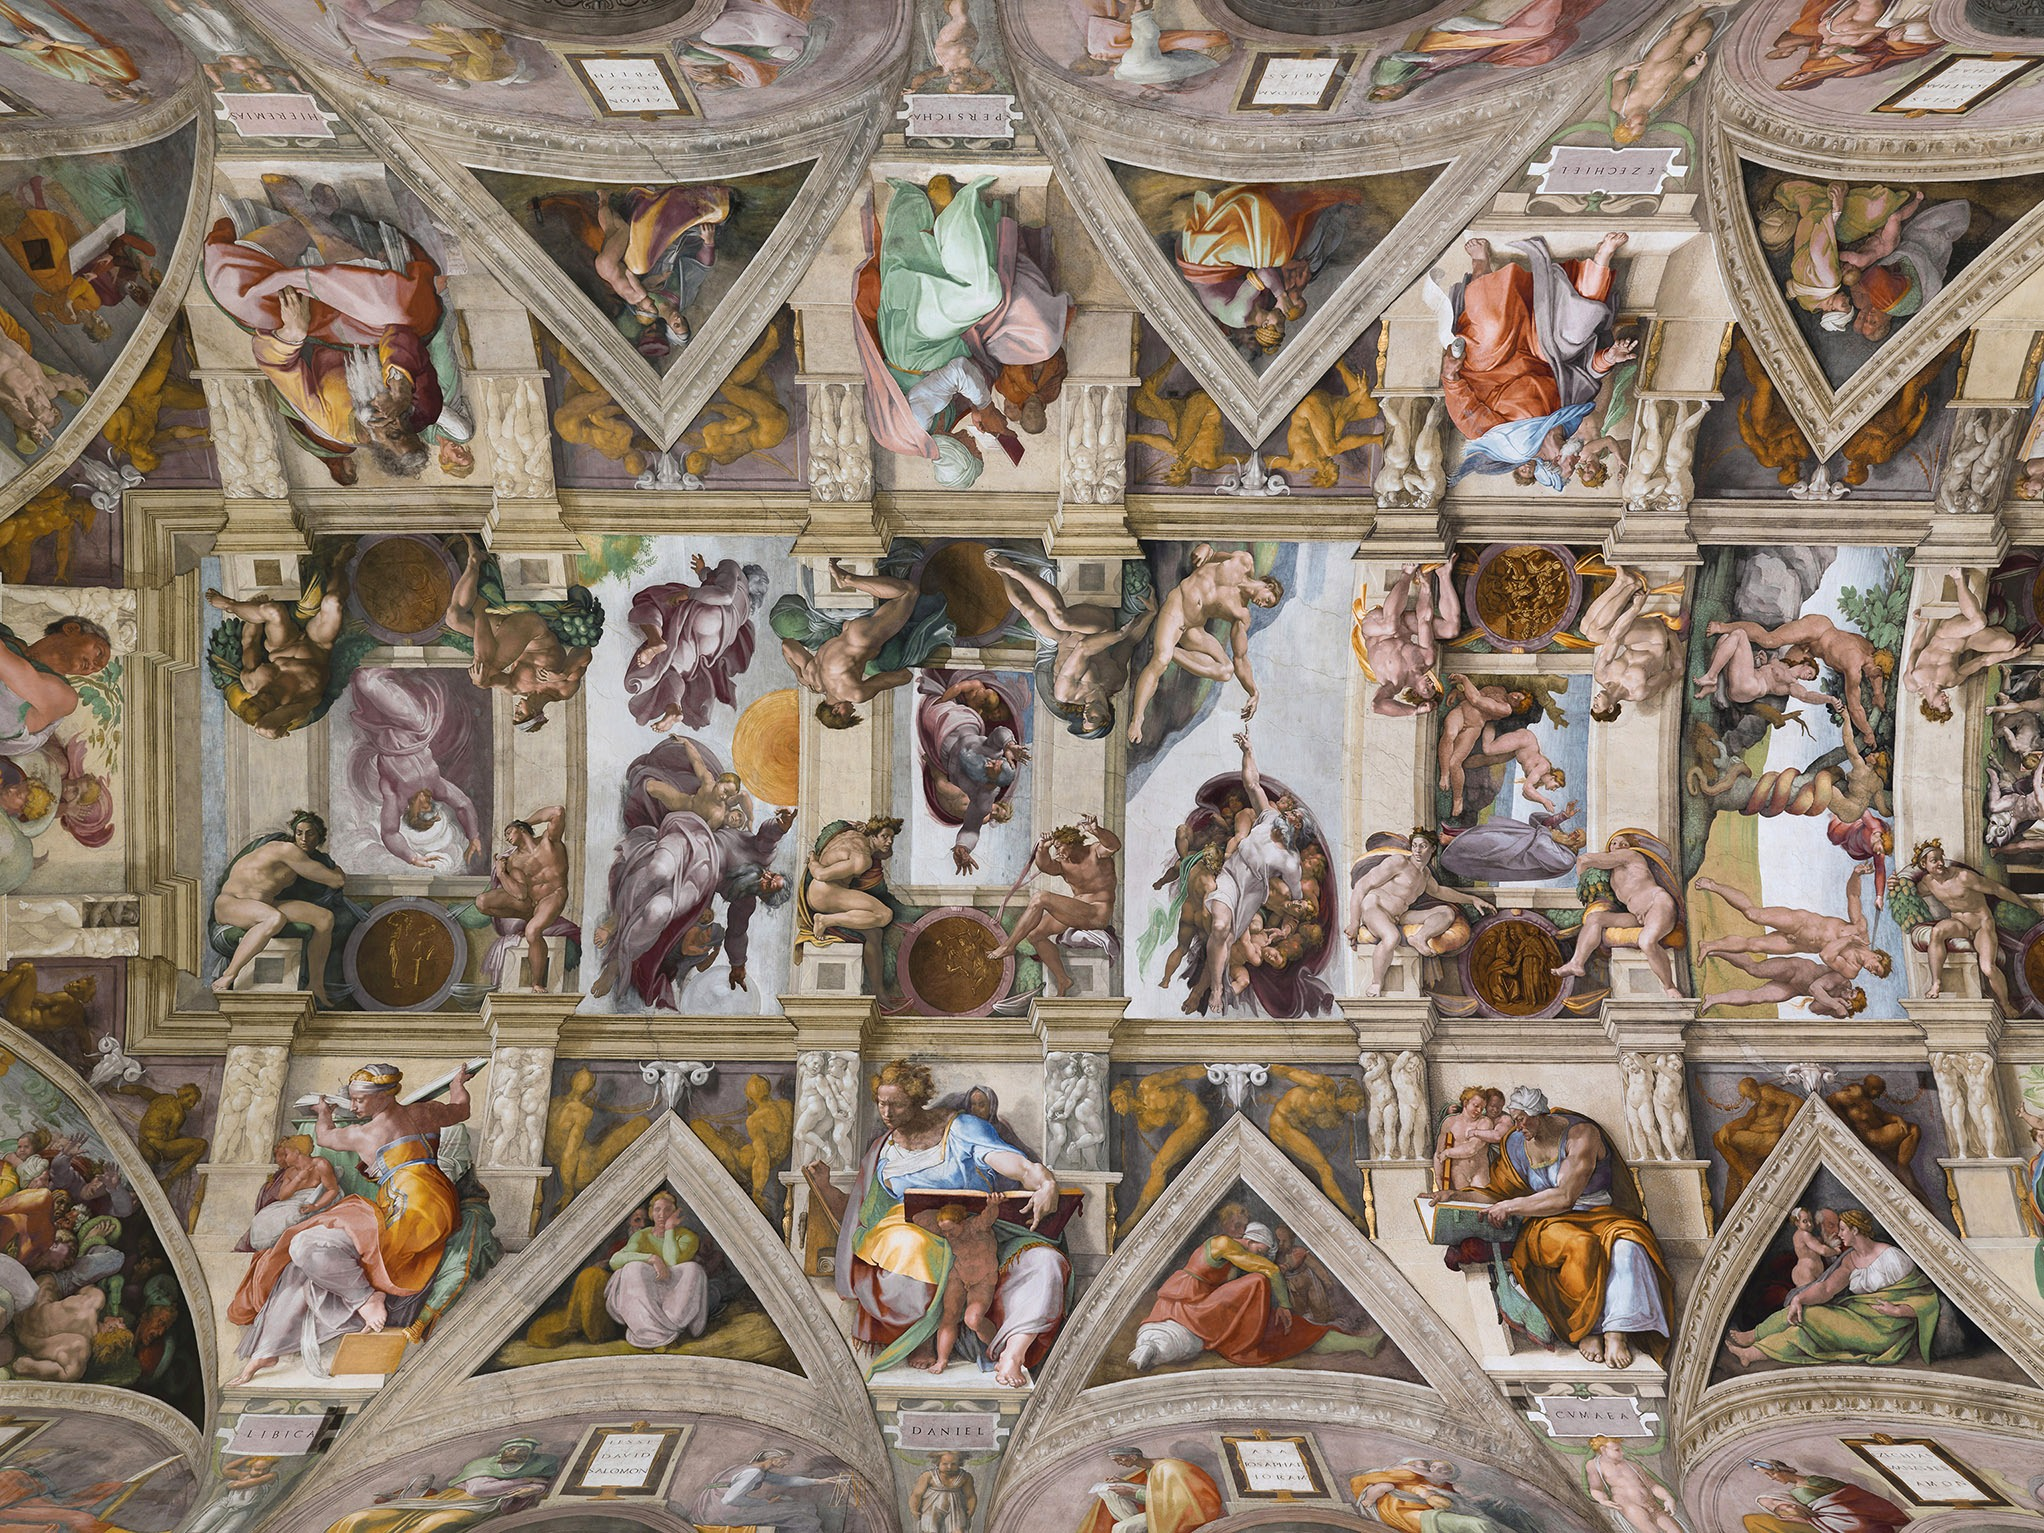 Michelangelo's  Sistine Chapel Ceiling  (Sistine Chapel [CC BY 2.5 (https://creativecommons.org/licenses/by/2.5)])